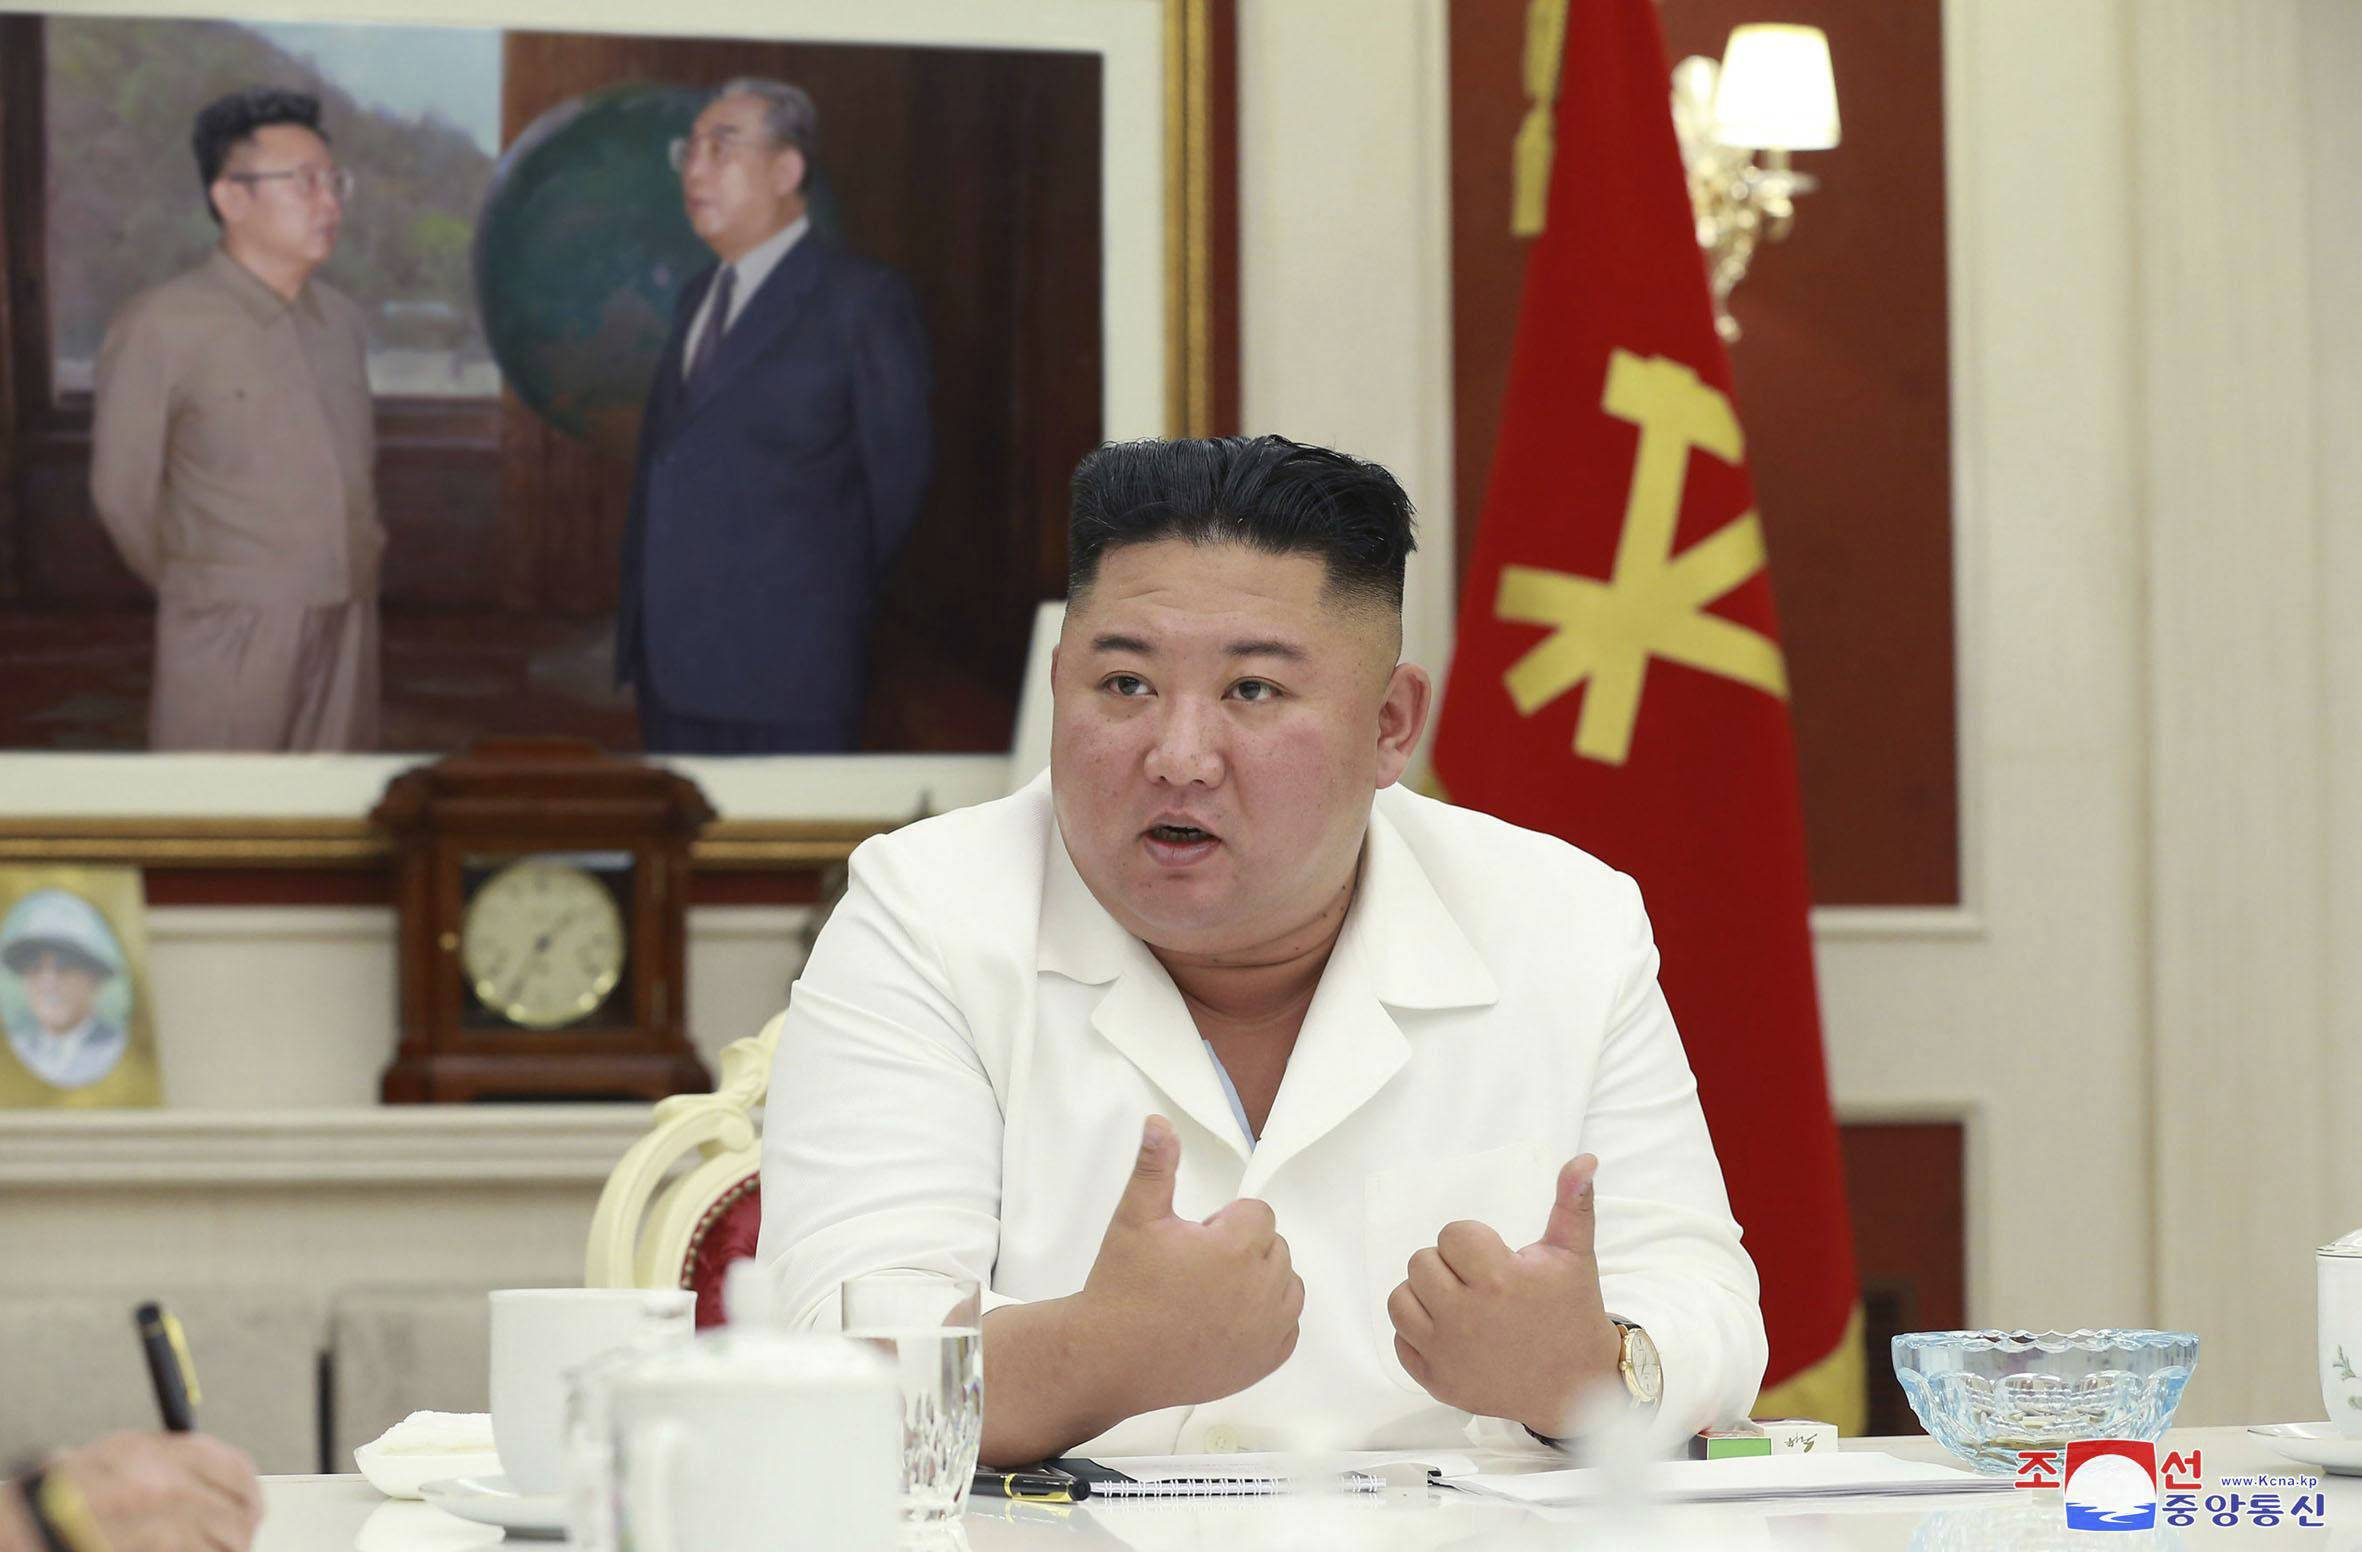 North Korea's economic plight may give Japan's next prime minister a chance to meet the reclusive state's leader Kim Jong Un. | KNS / VIA KYODO